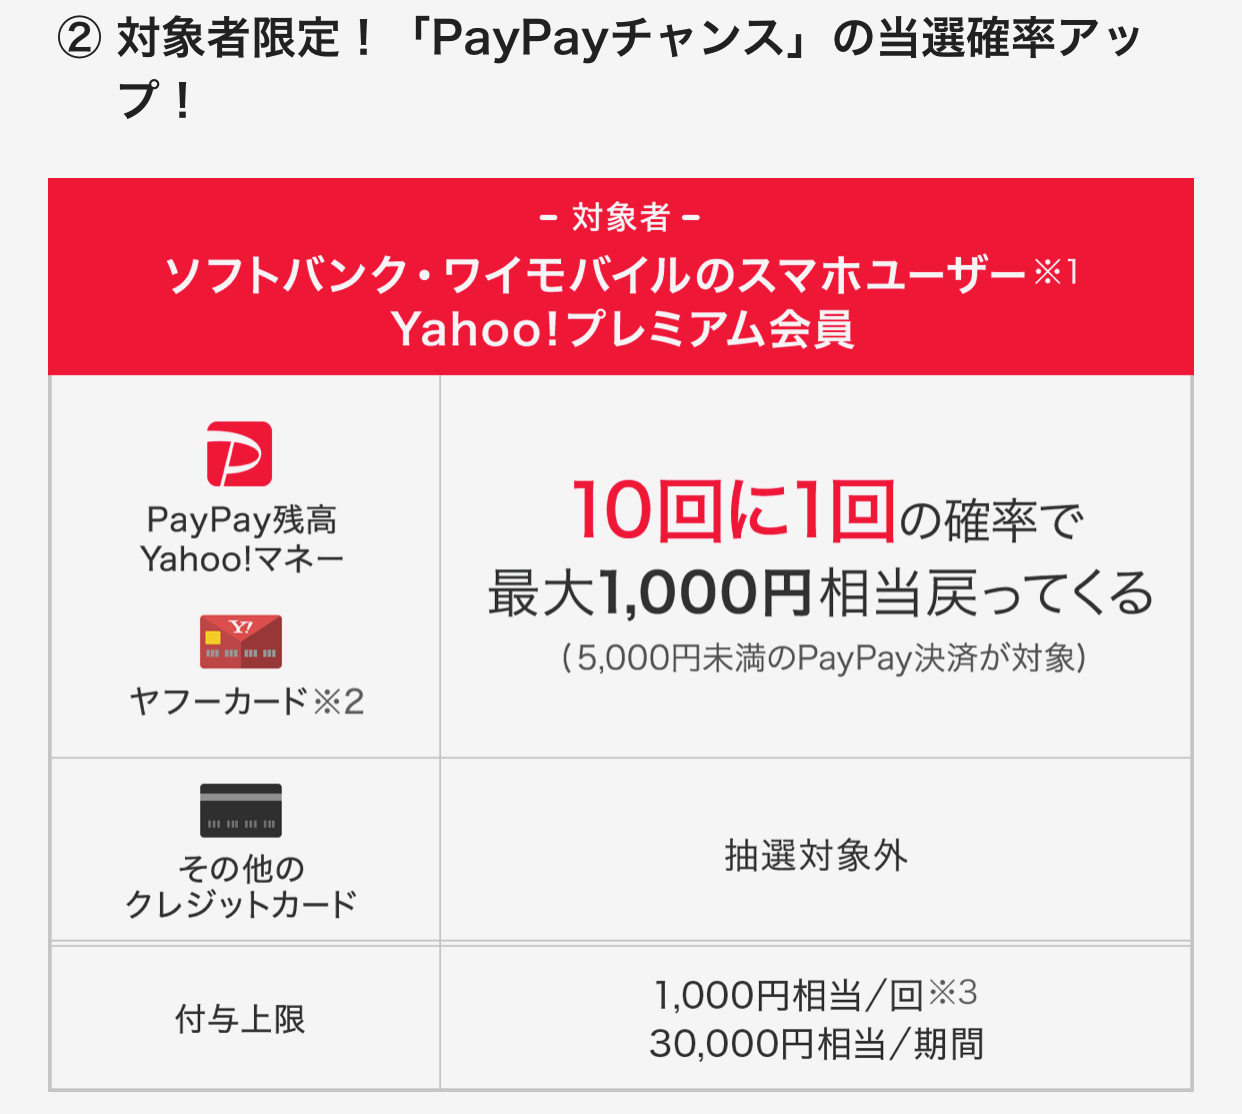 PayPay 6gatsudragstore 02